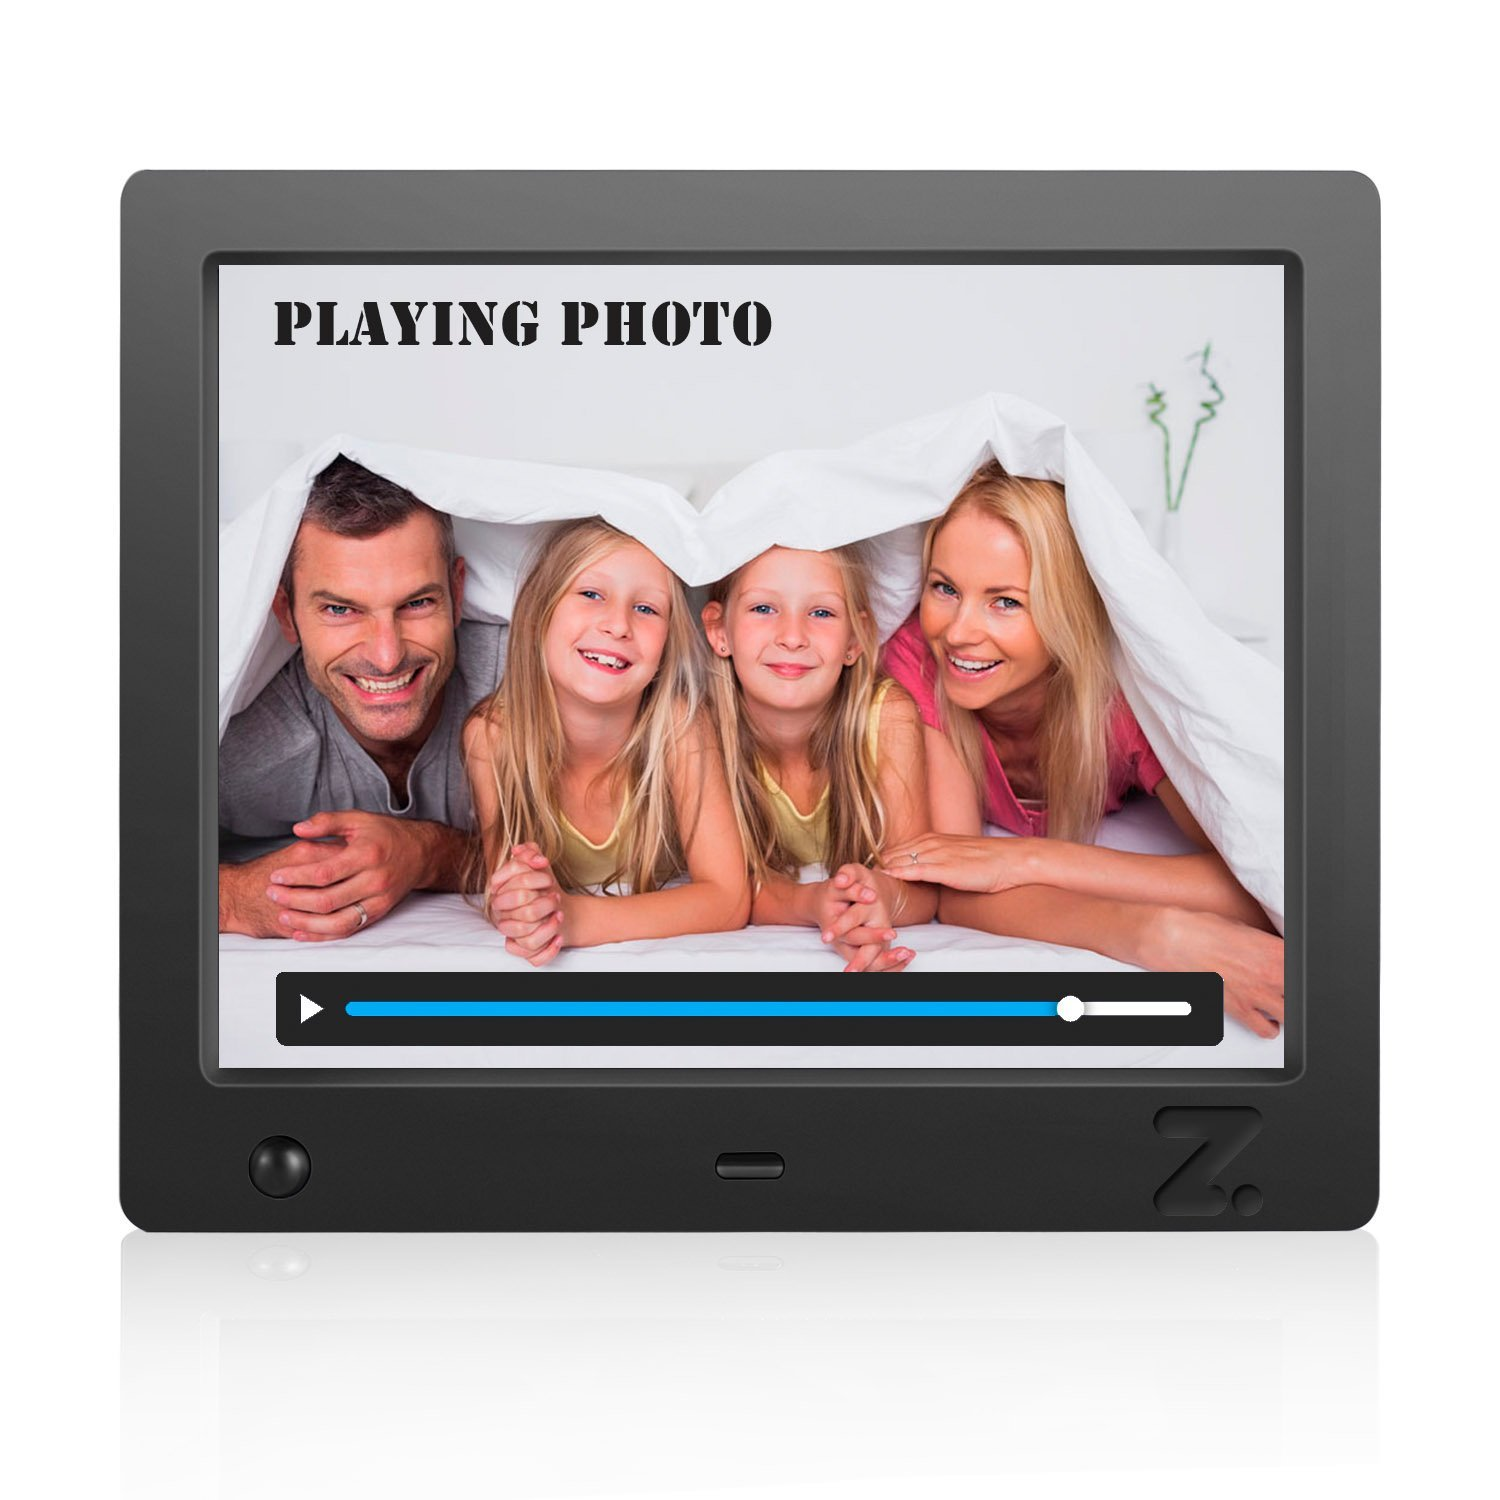 Musical Digital Photo Frame 8 inch, Picture Auto Play, HD Video 1080P (Black)